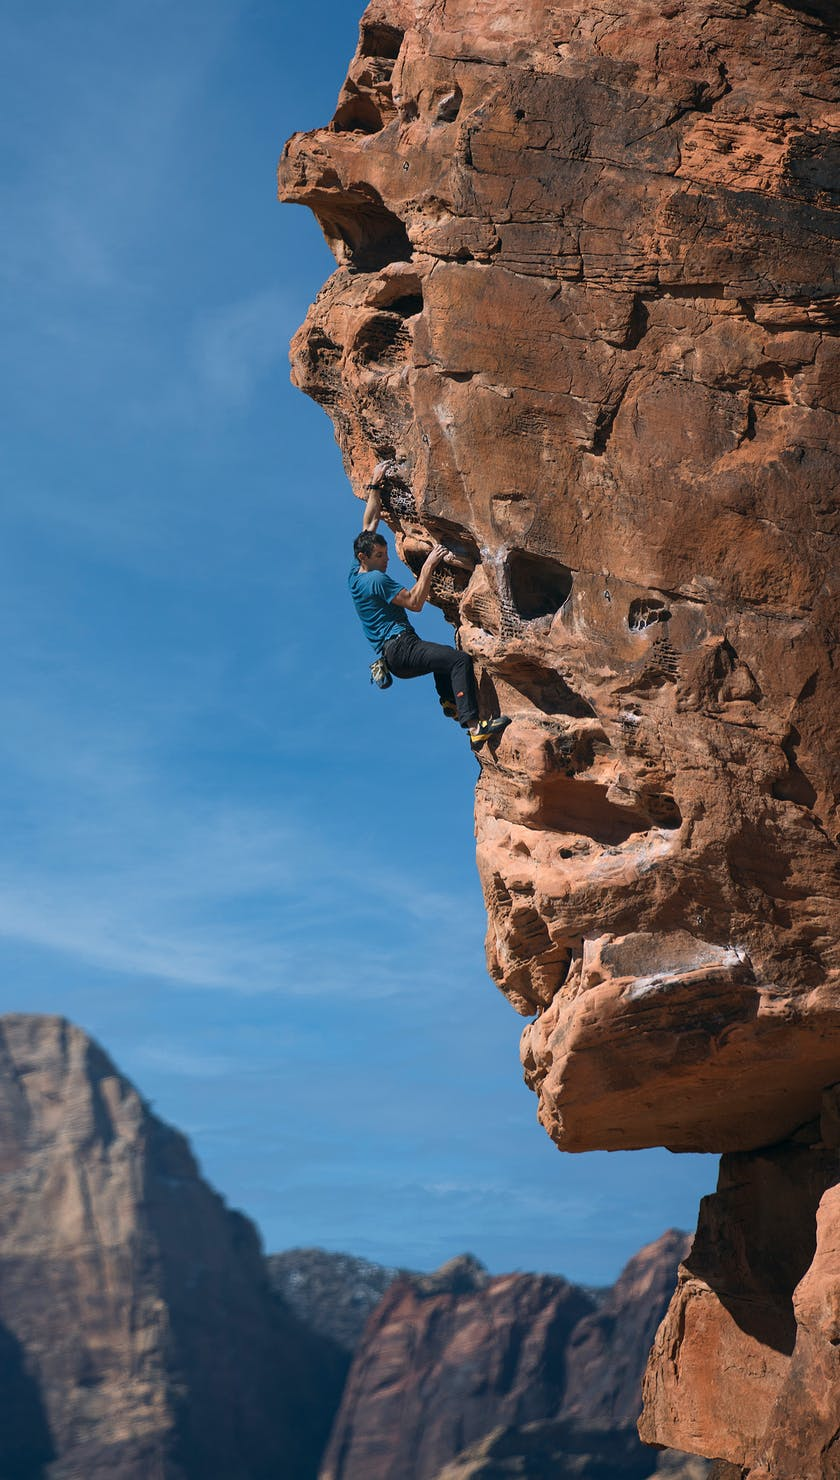 BD Athlete Alex Honnold free soloing a route in Las Vegas, Nevada